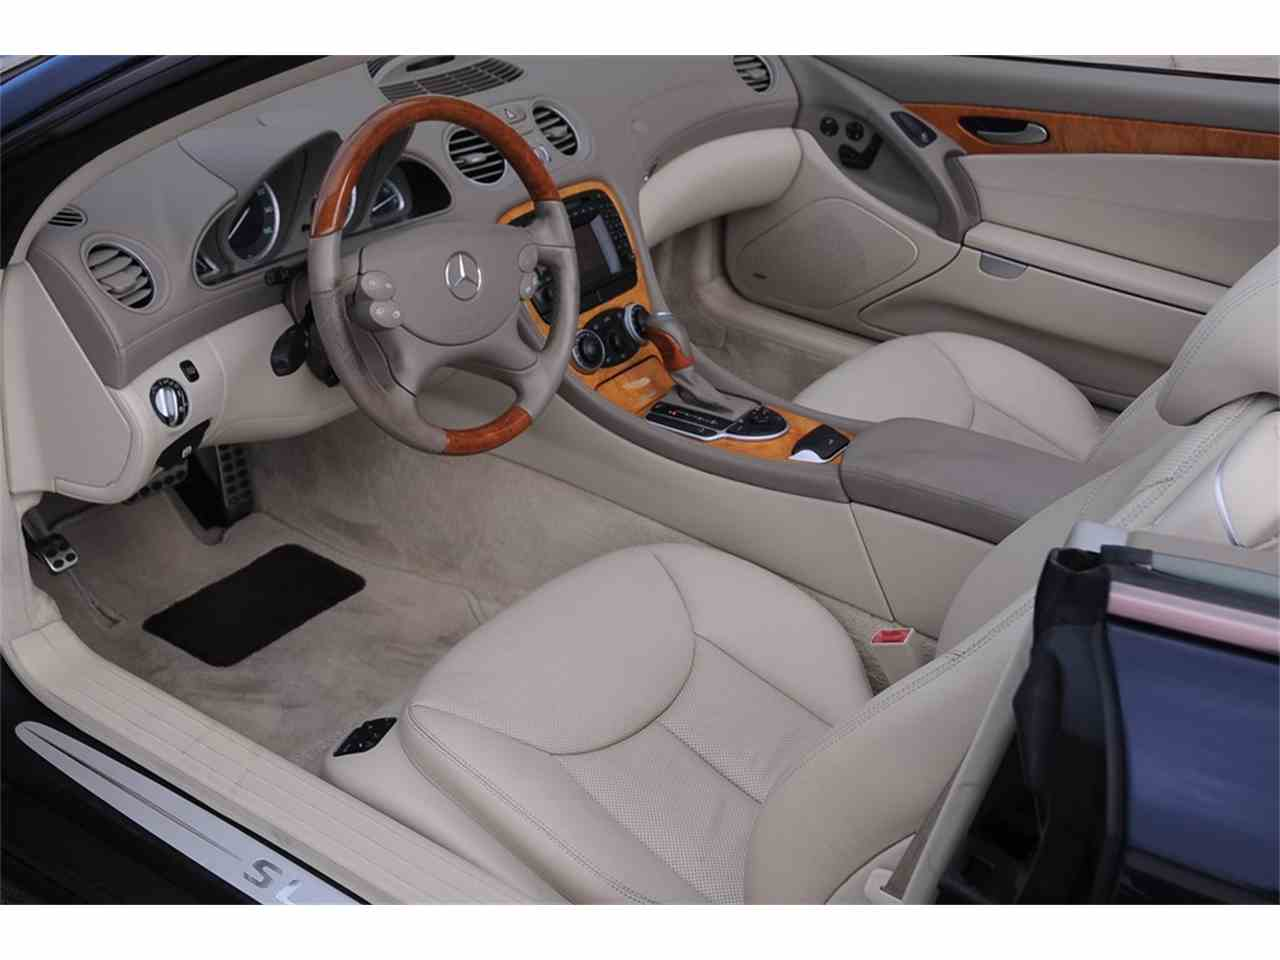 Large Picture of '03 Mercedes-Benz SL500 located in California - $13,990.00 Offered by Star European Inc. - M694